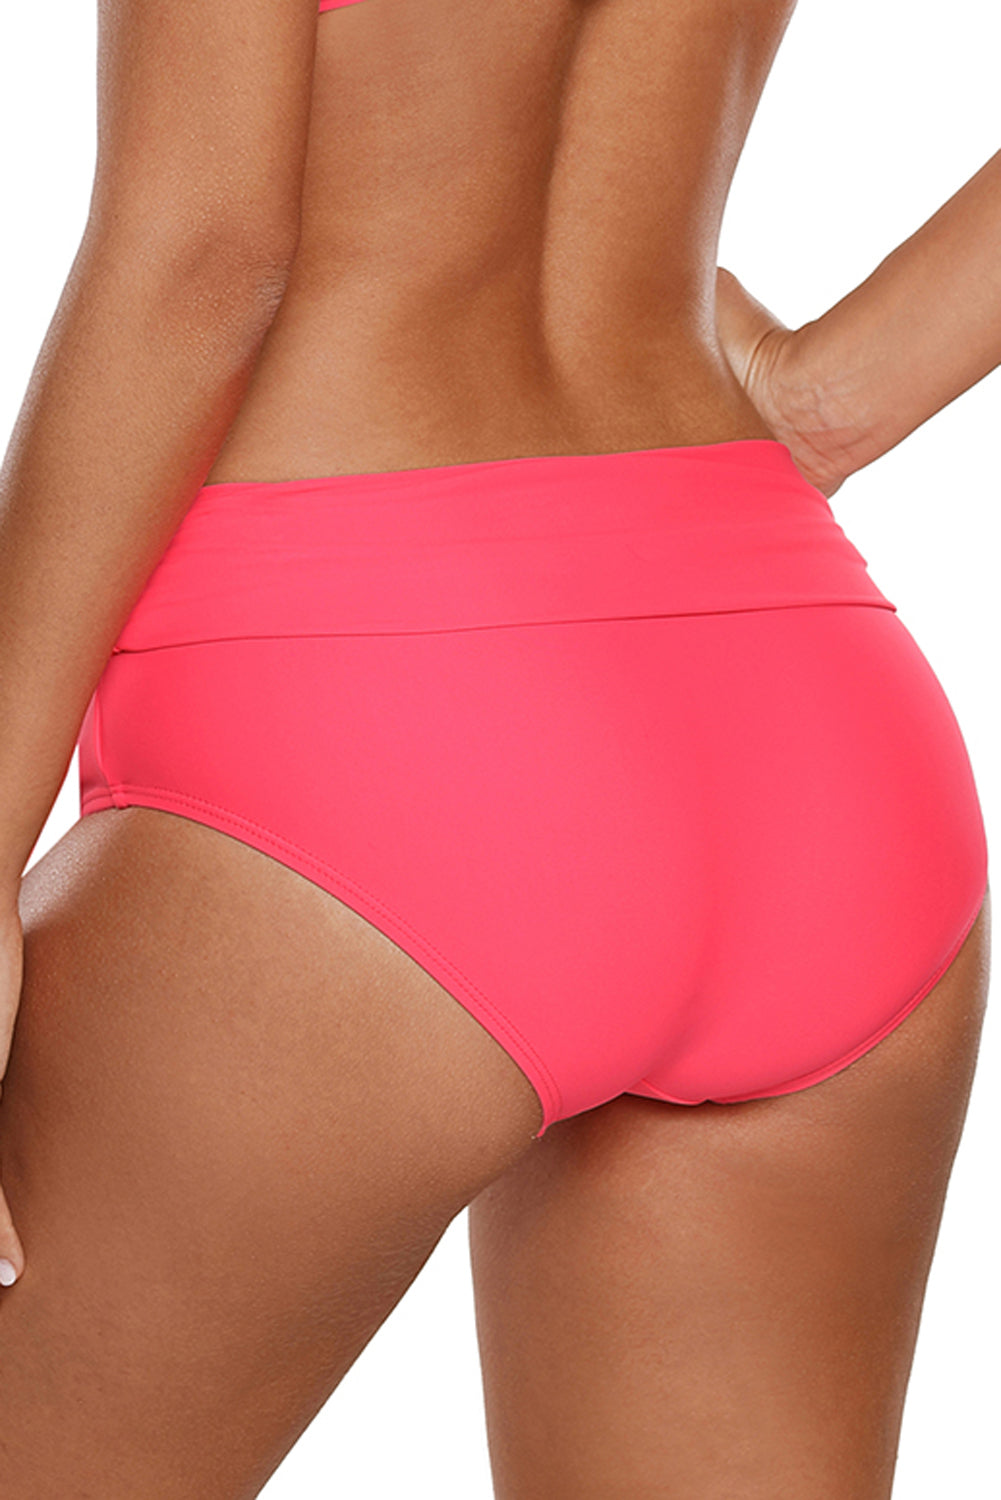 Rosy Tied Wide Waist Band Bikini Bottom